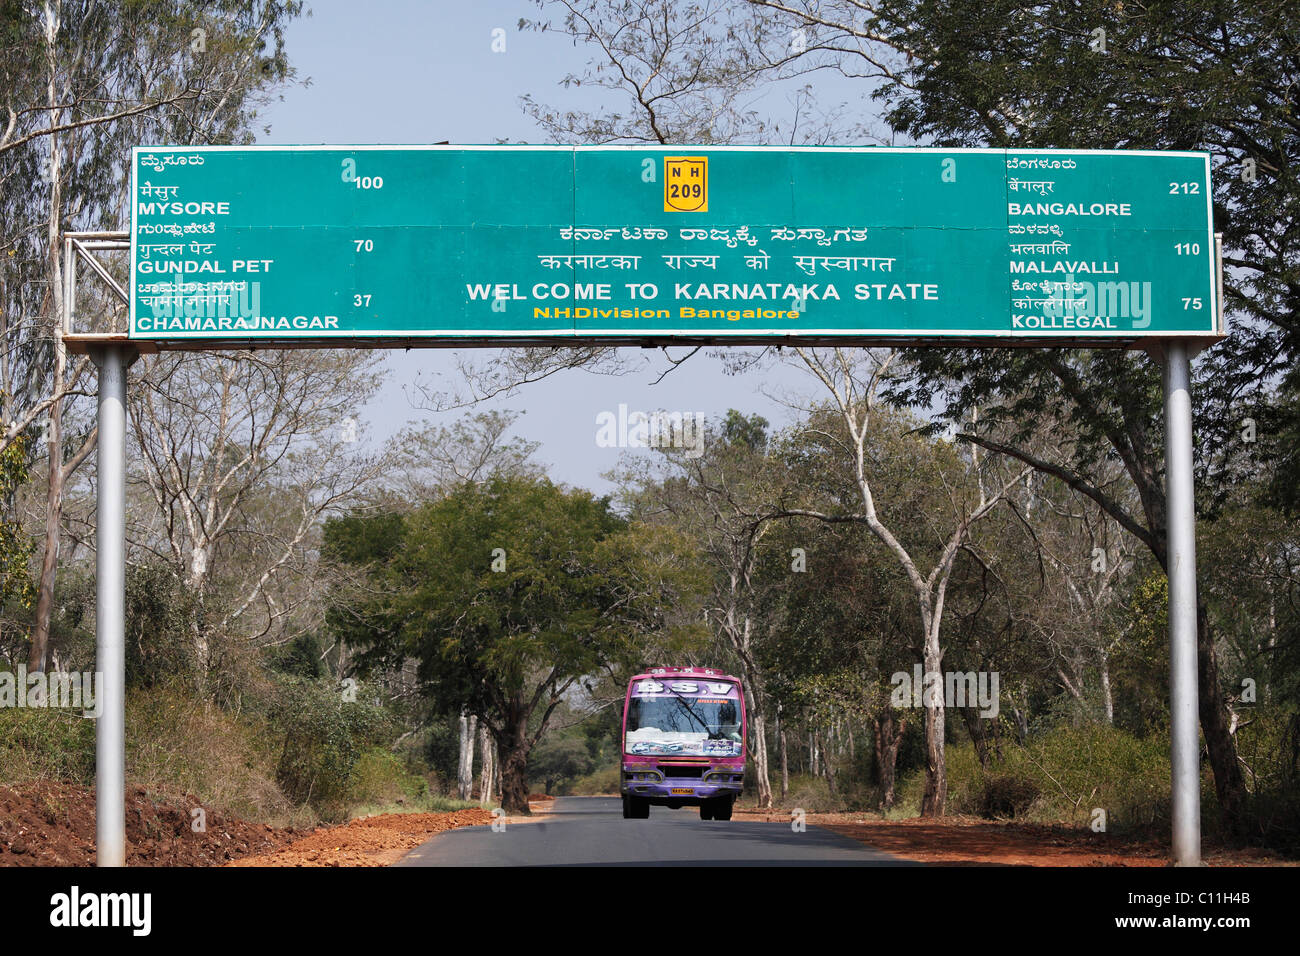 State border with Karnataka, sign in three languages, Kannada, Tamil and English, South India, India, South Asia, - Stock Image